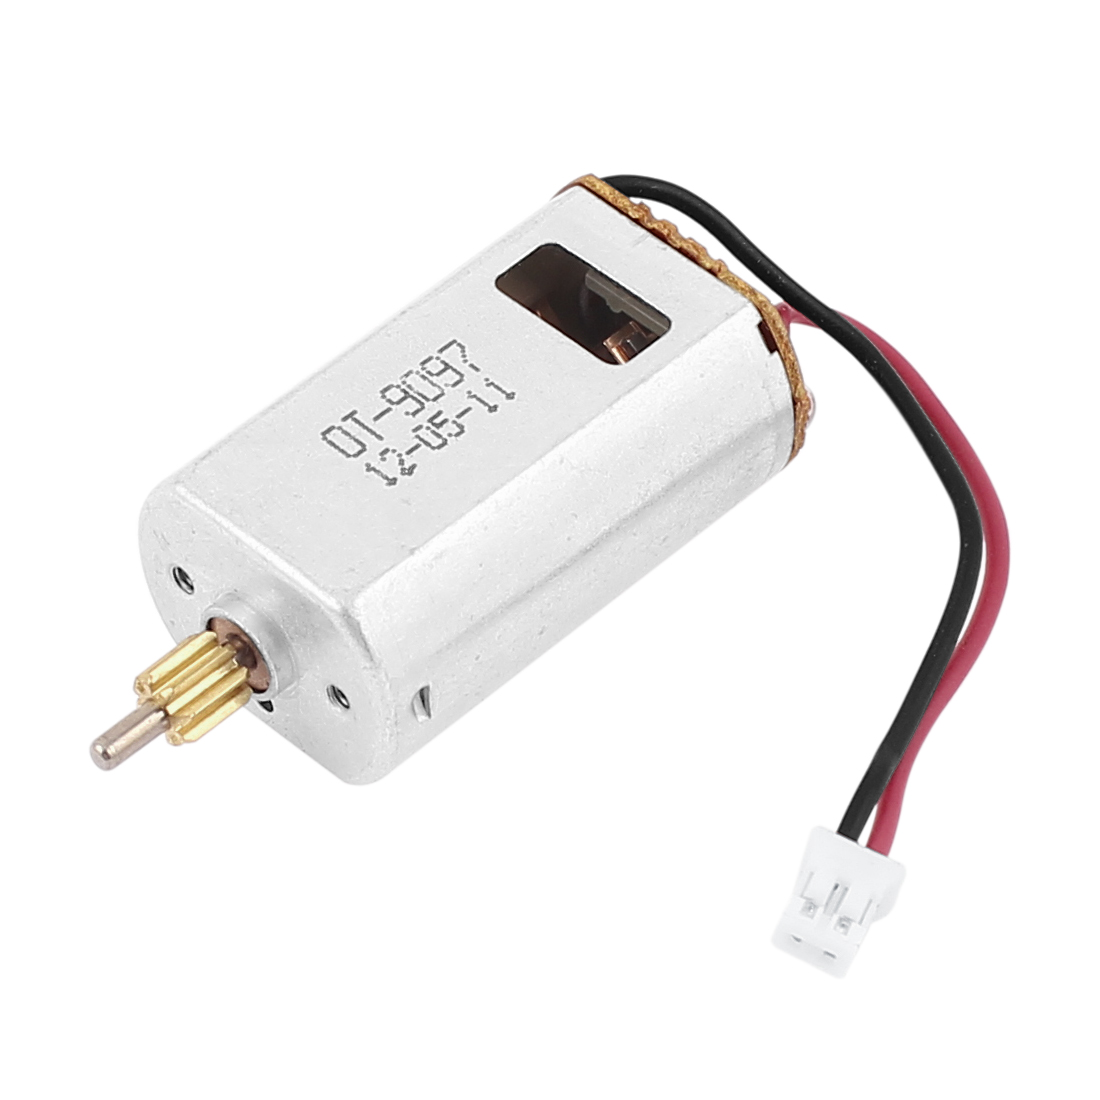 DC 7.4V 31800RPM 2mm Shaft Magnetic Mini Motor for DH 9116 9100 RC Plane